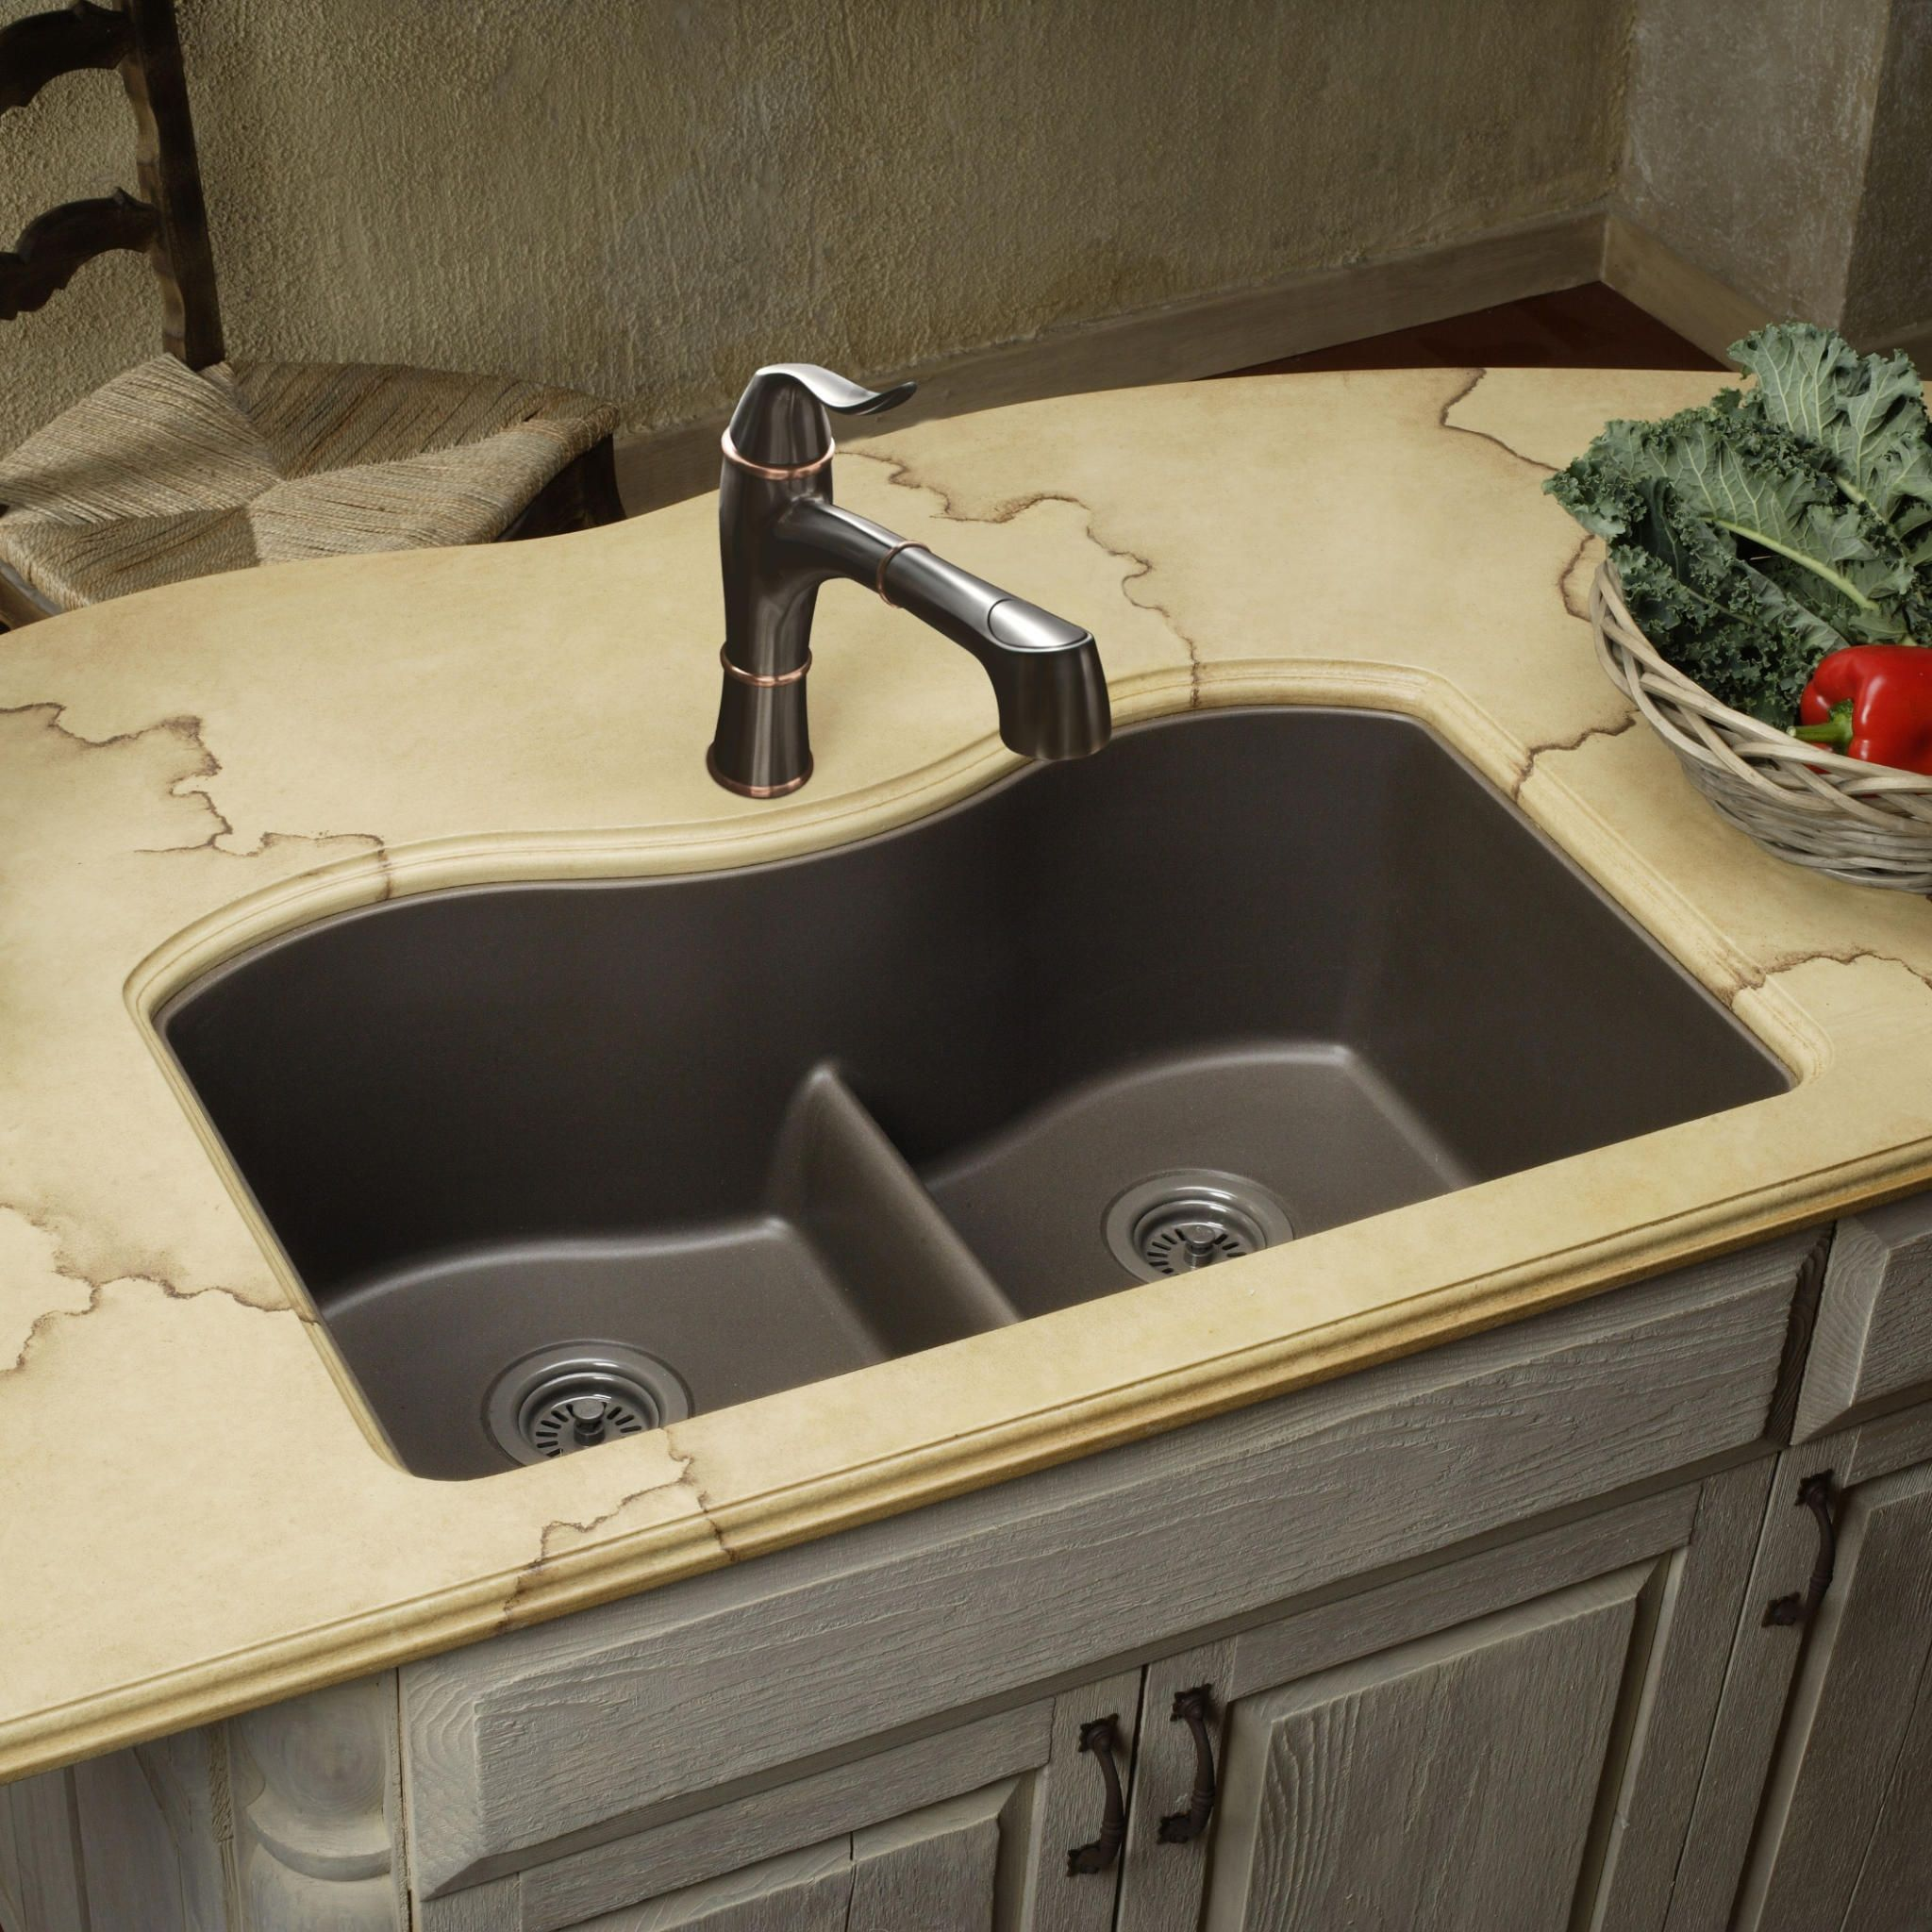 Medium image of americast kitchen sink colors